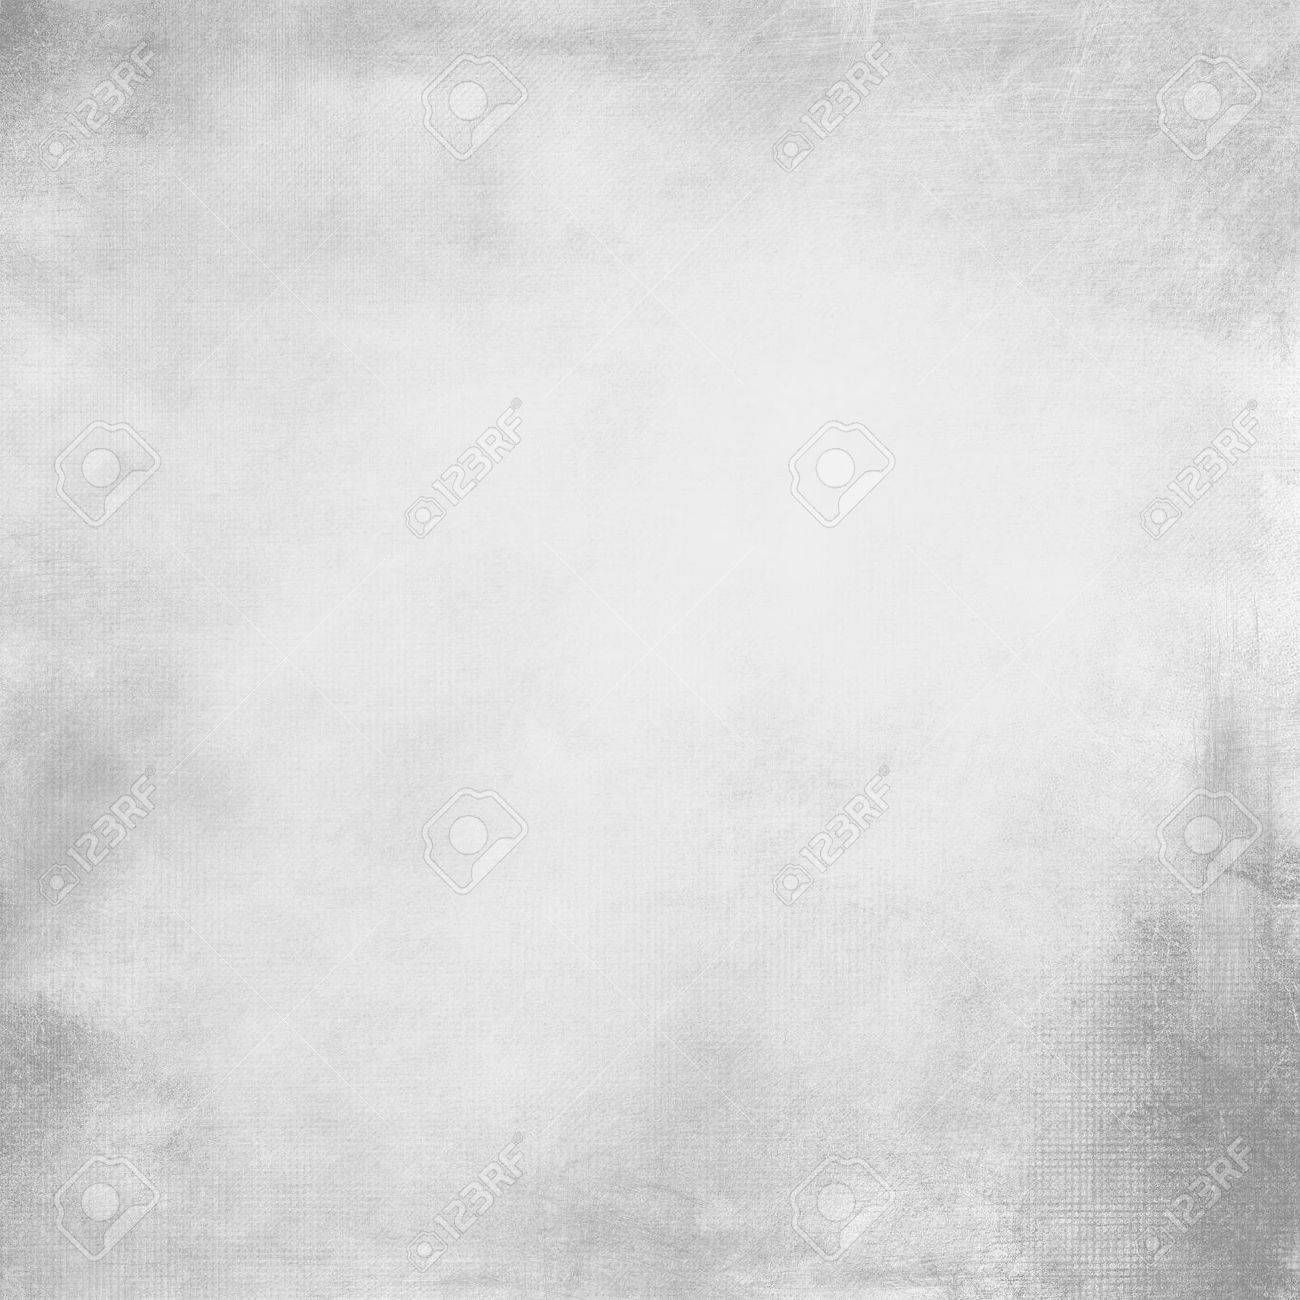 old white paper texture as abstract grunge background Stock Photo - 18647401